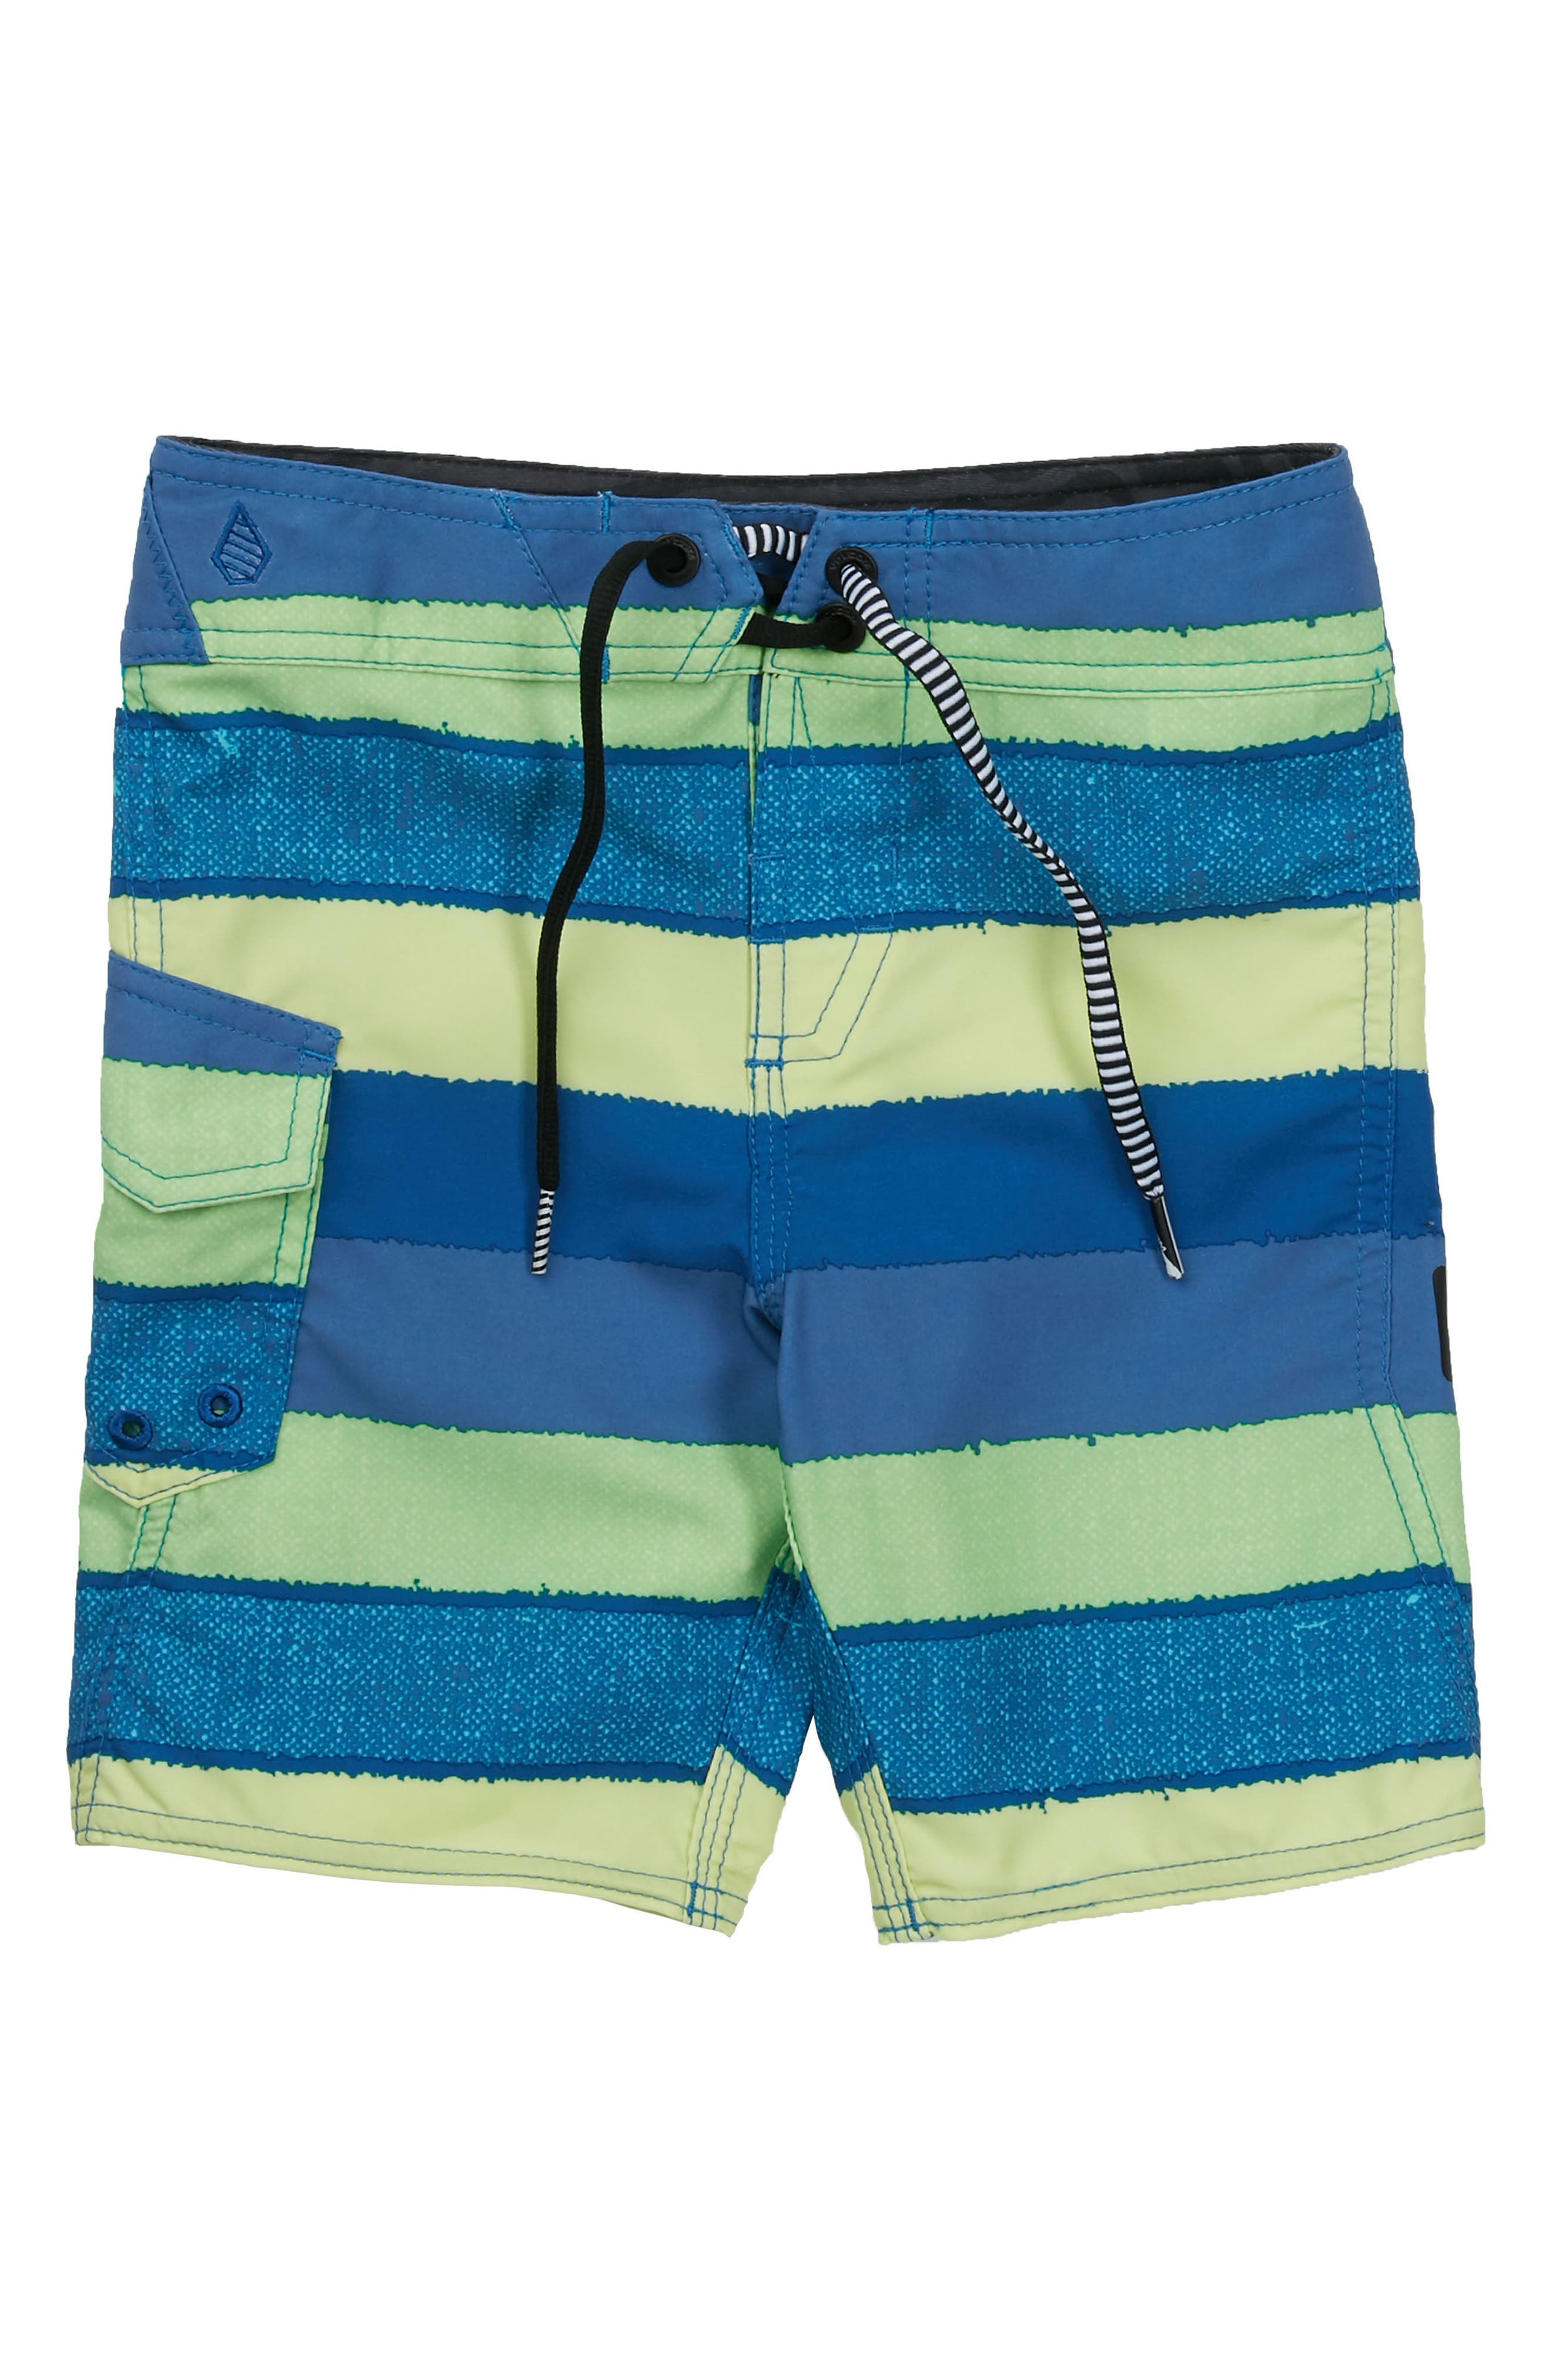 Magnetic Liney Mod Board Shorts,                         Main,                         color, 313